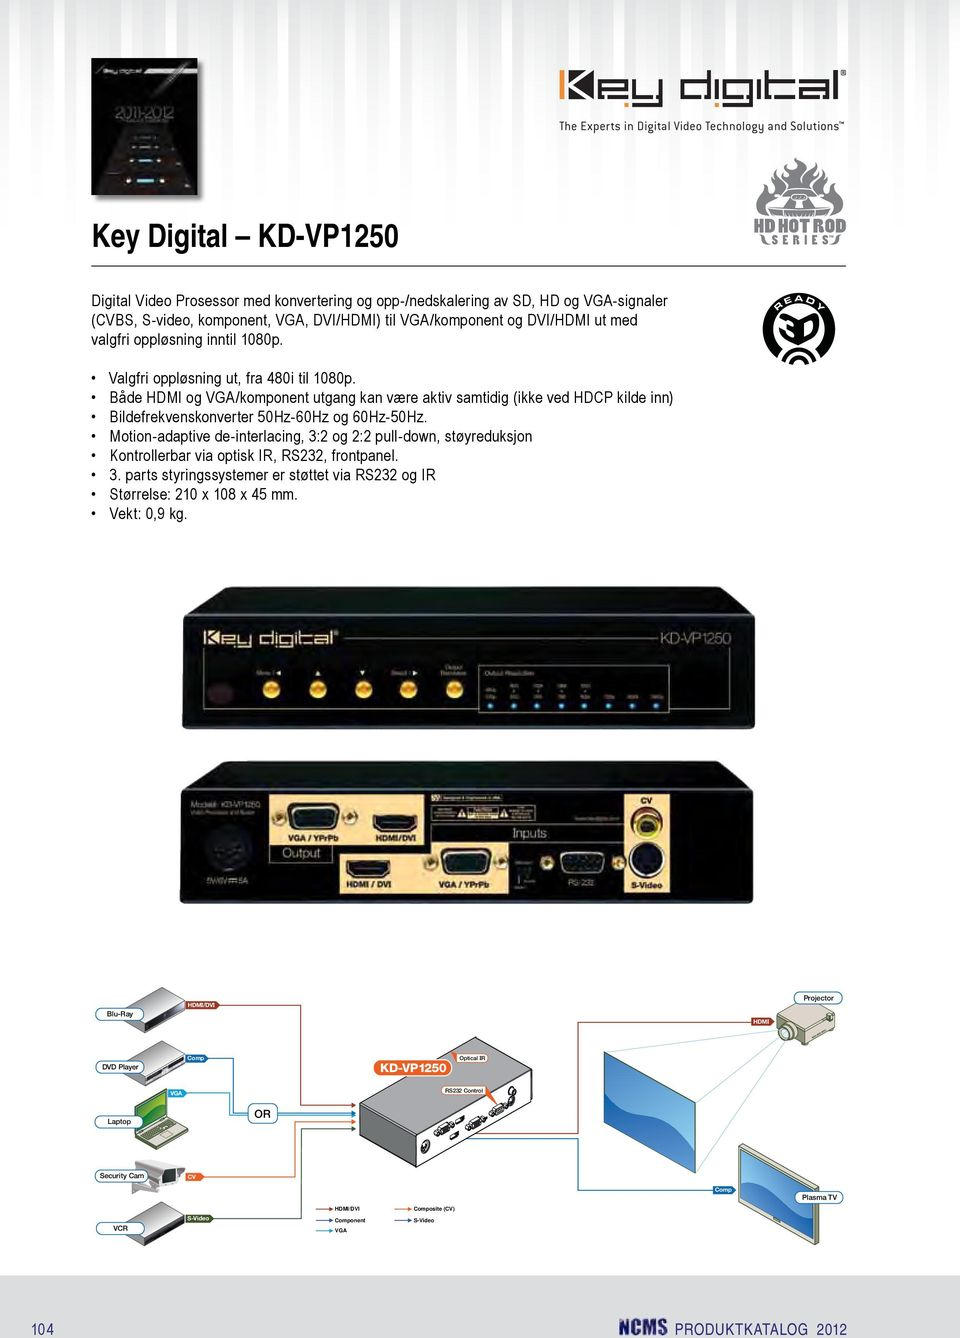 Scaler Specifications Key Features ½ Up-converts / down-converts SD, HD, XGA, SXGA, and WXGA resolutions of analog and digital video inputs from 480i to 1080i to a single digital /DVI and